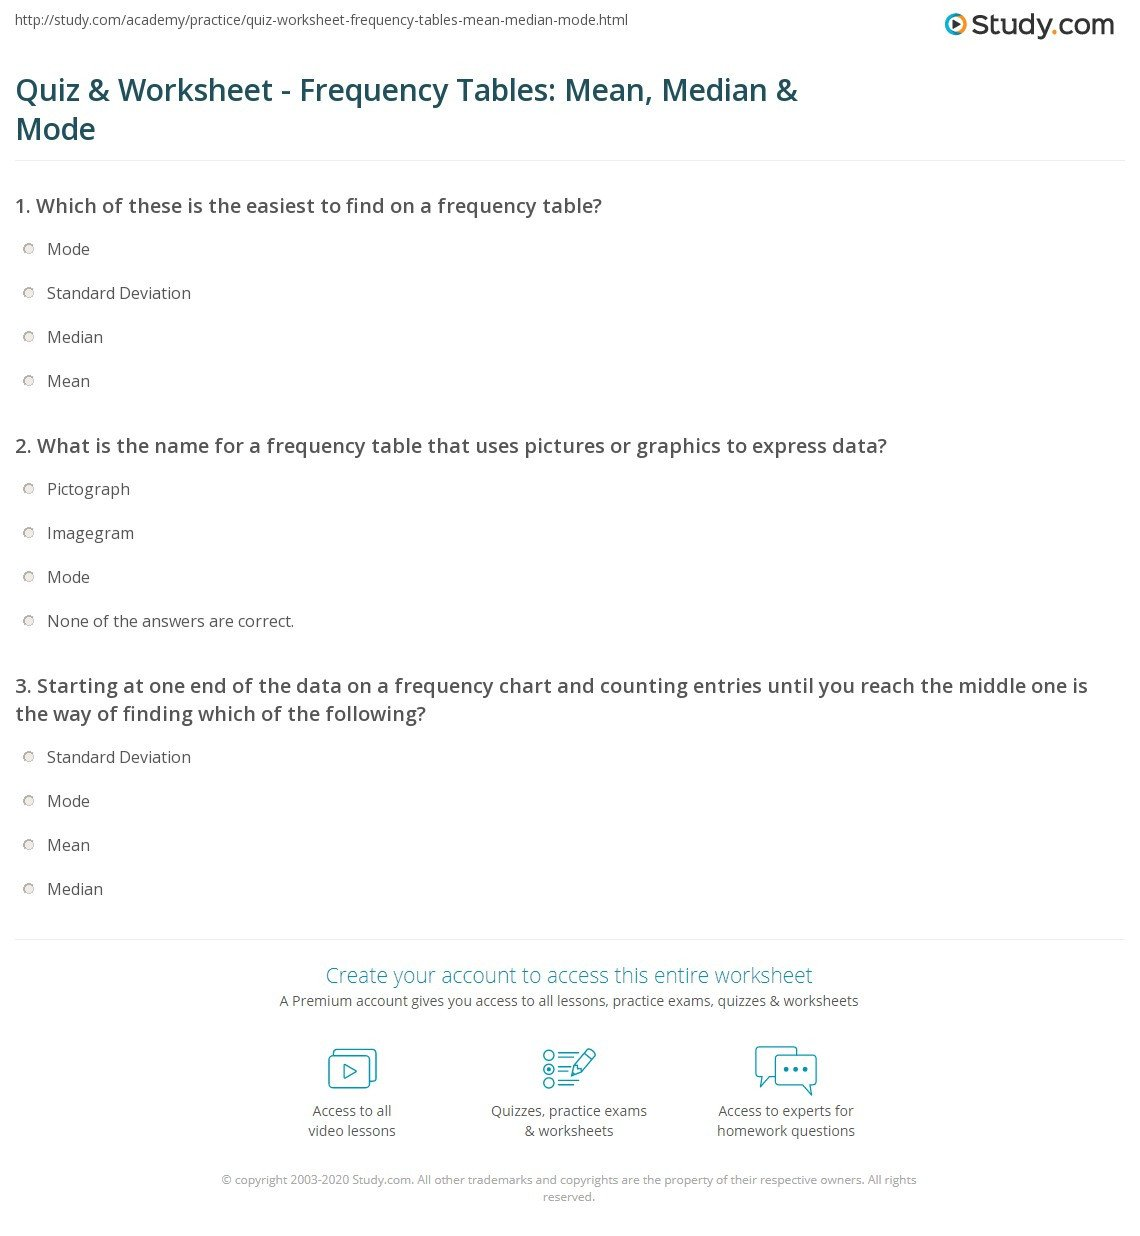 quiz worksheet frequency tables mean median mode